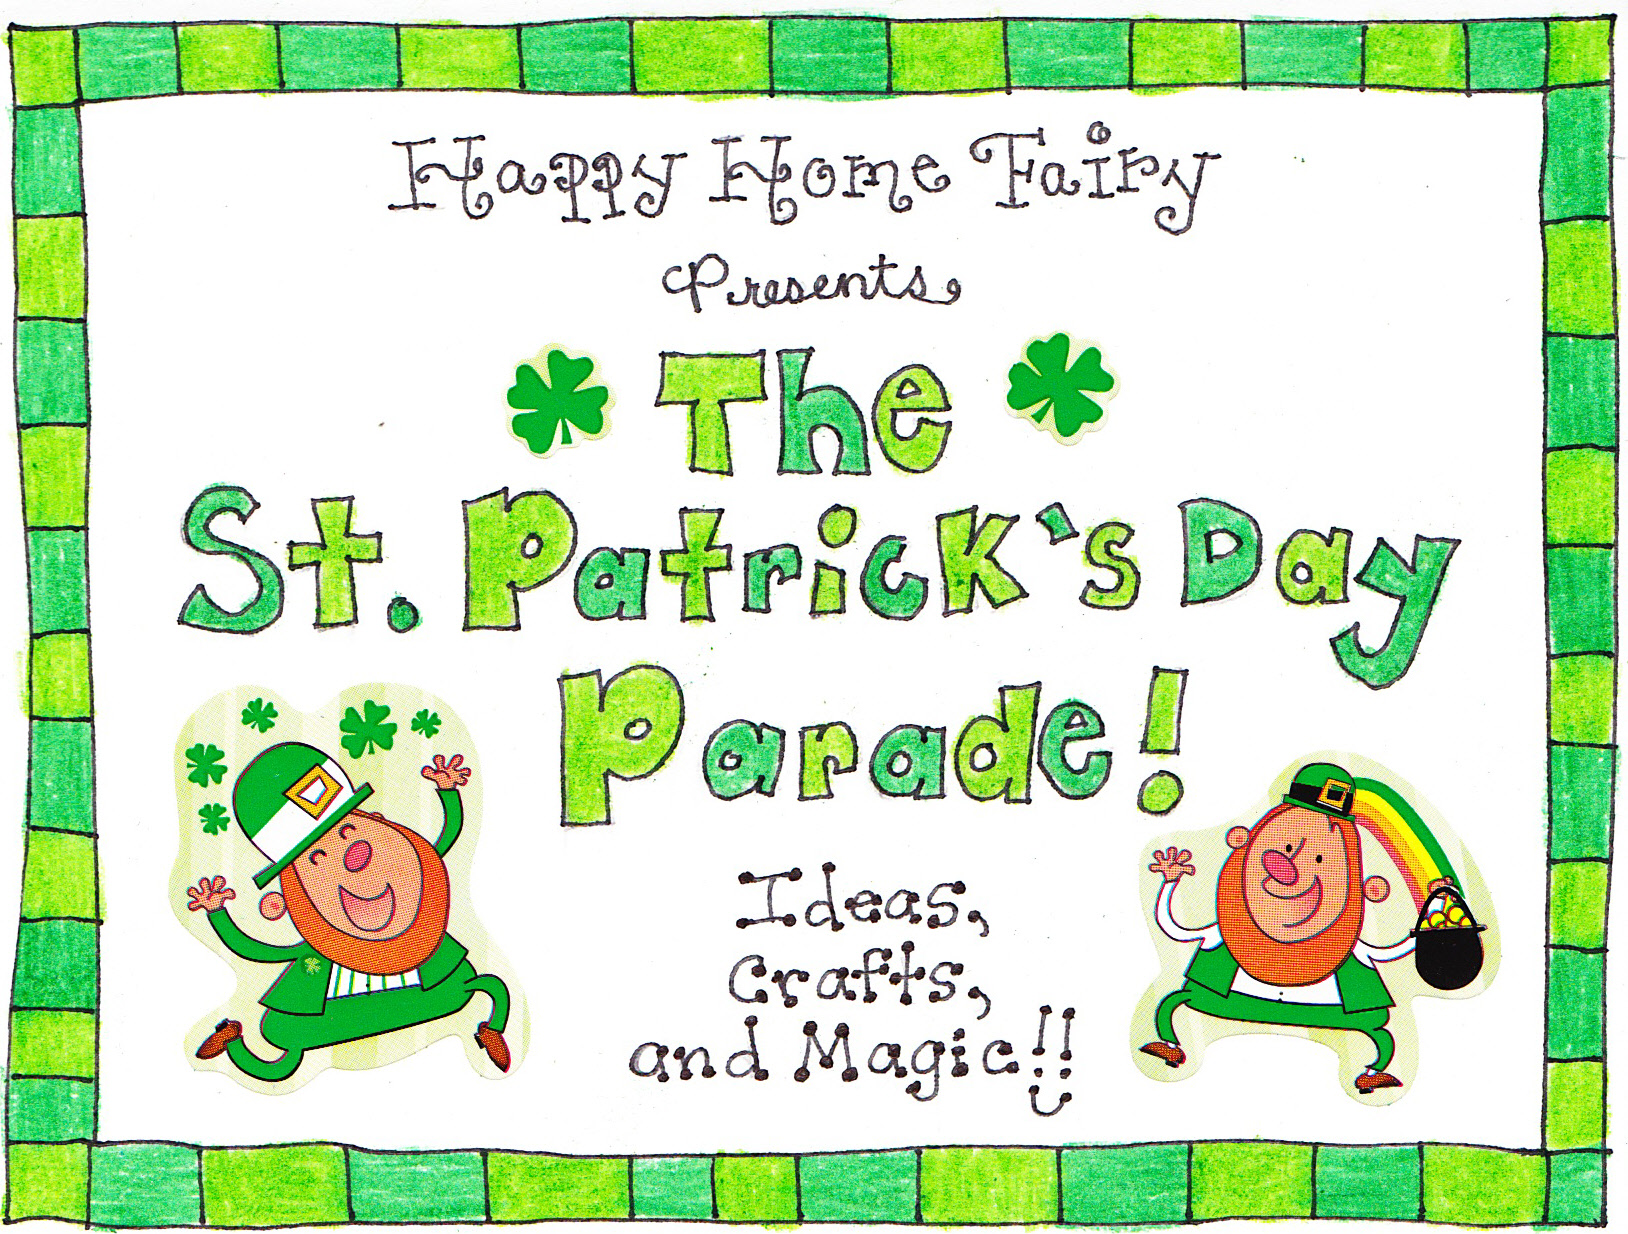 picture about St Patrick's Day Cards Free Printable known as St. Patricks Working day Interaction Playing cards - Absolutely free Printable